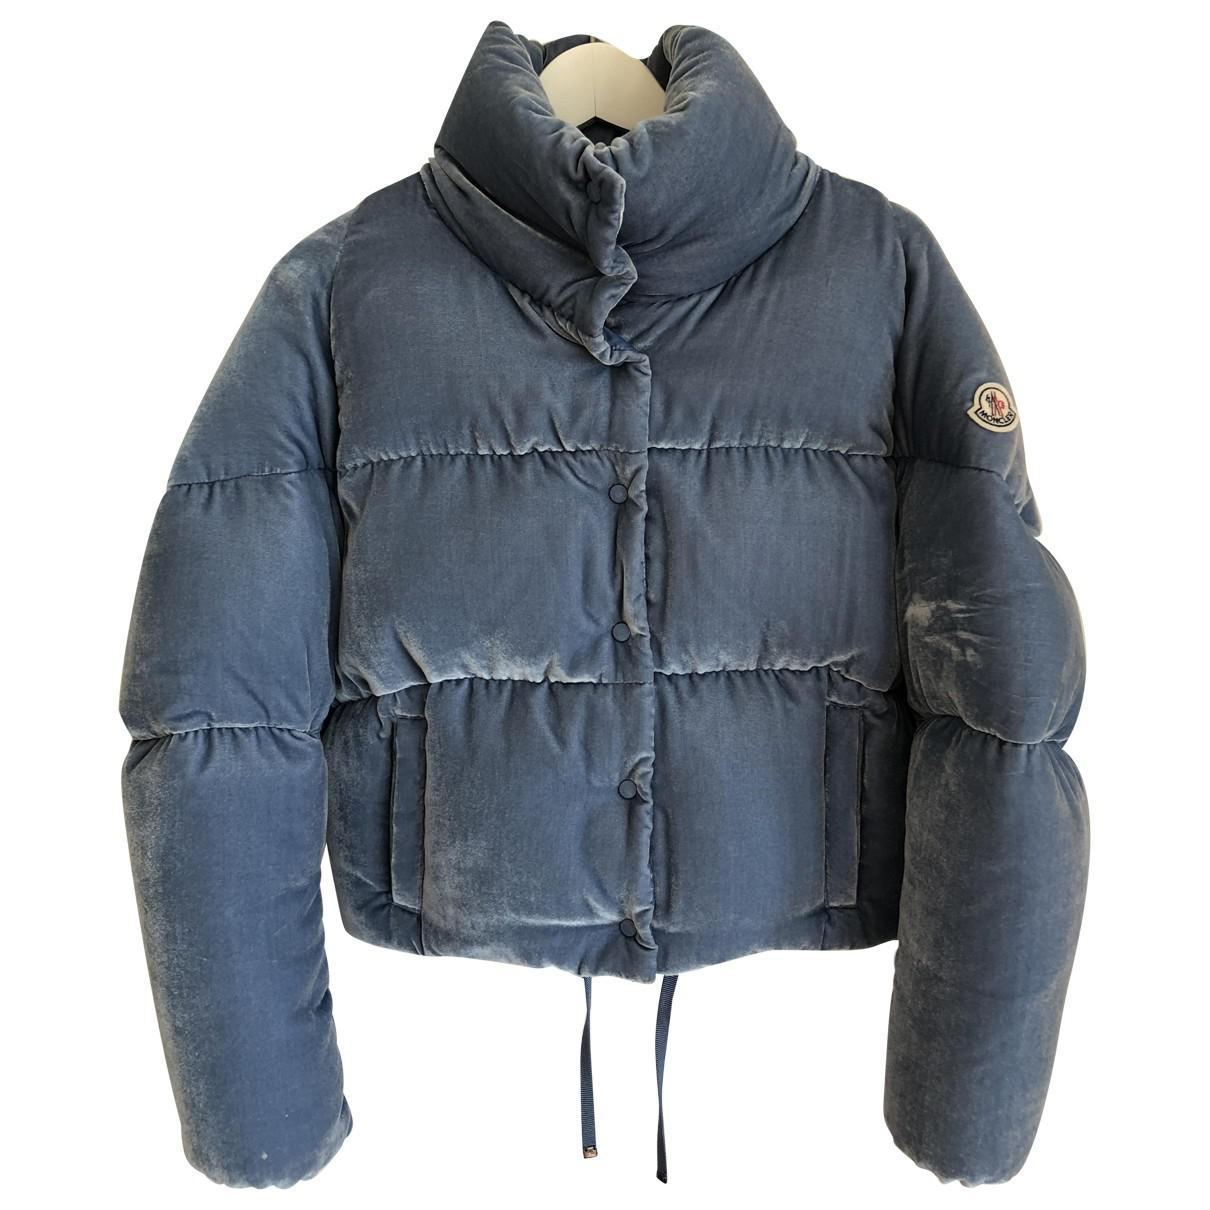 moncler jacket pre owned